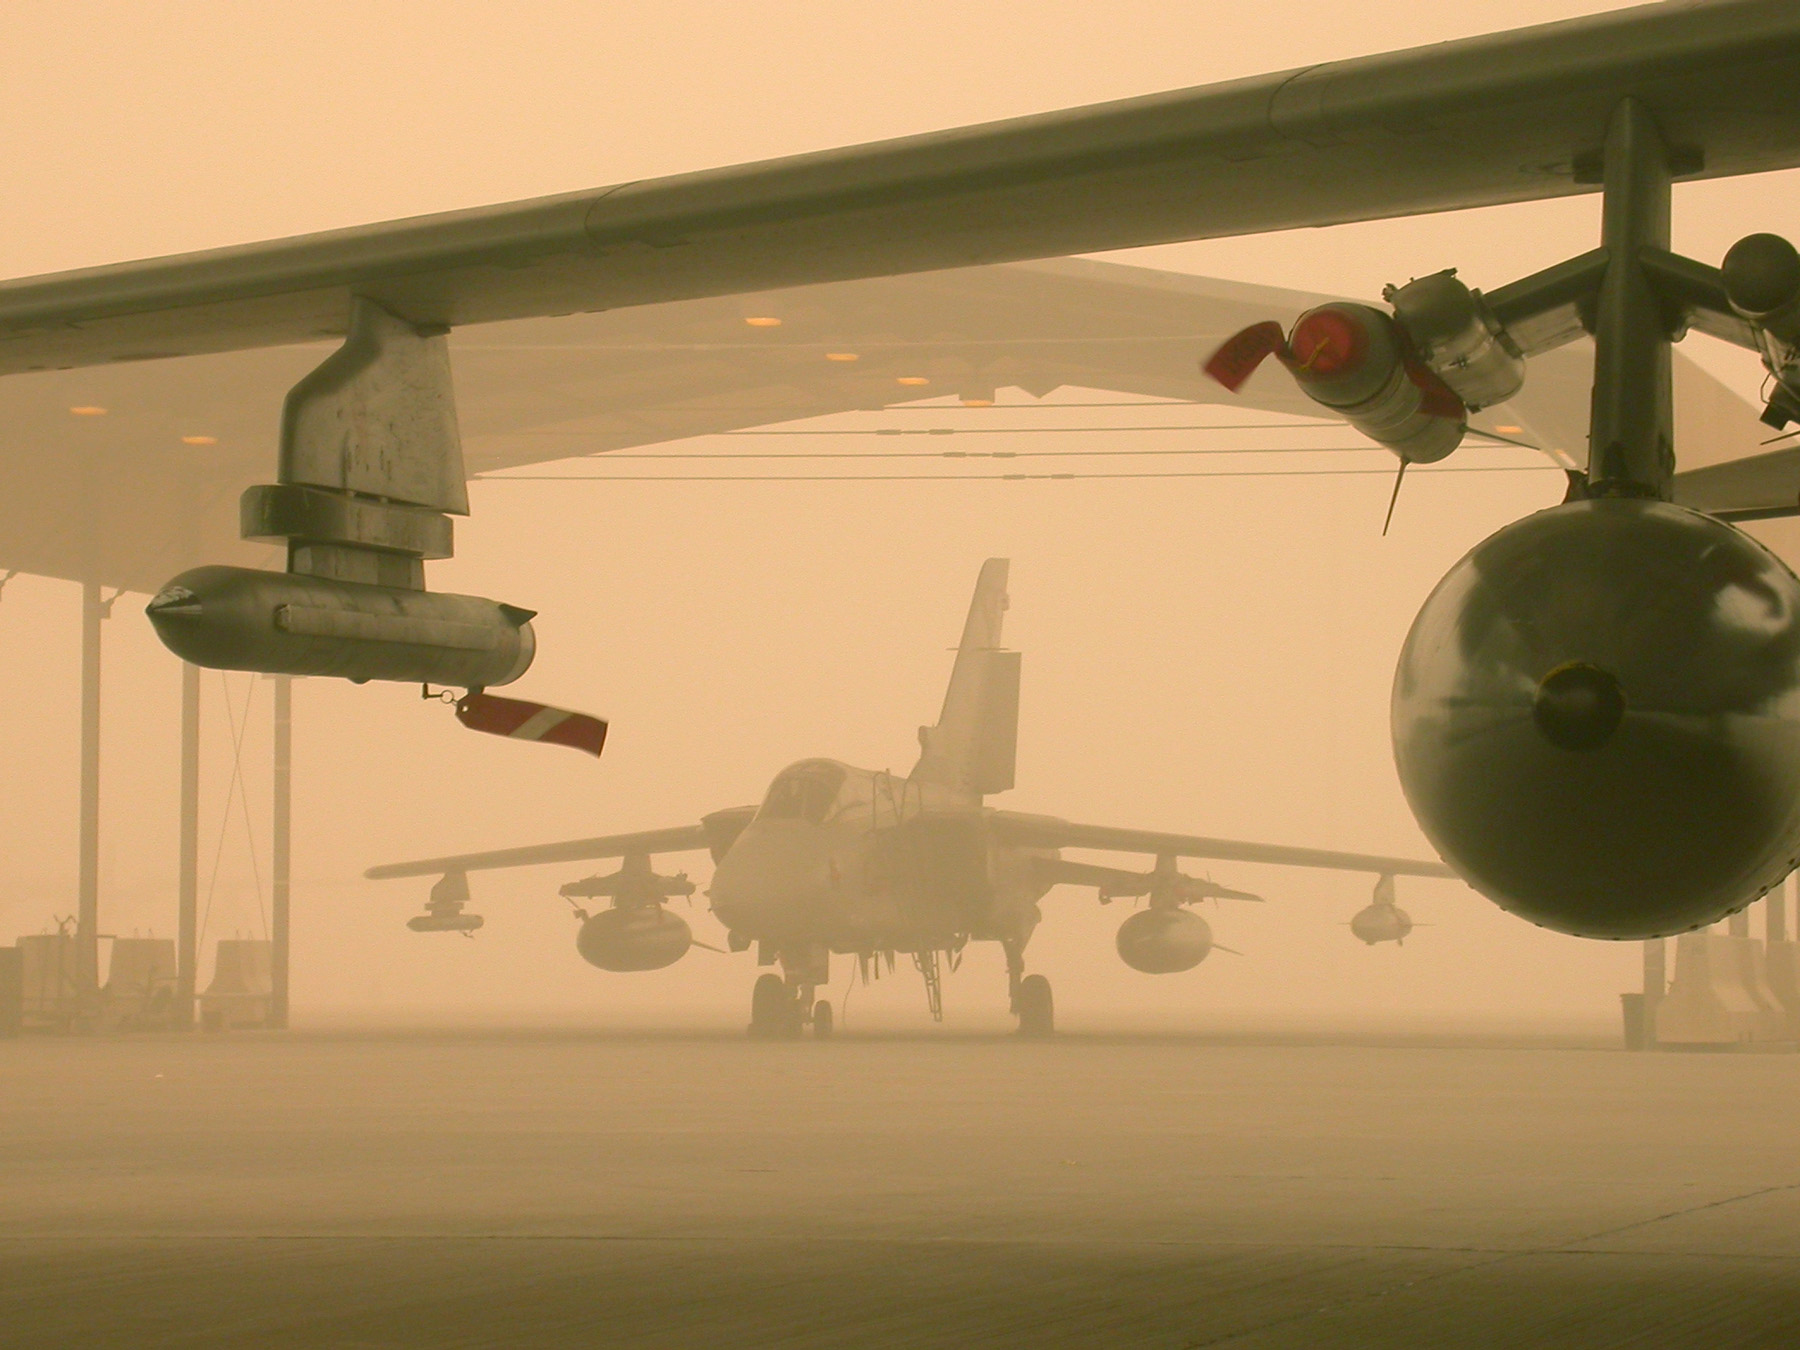 fighter jets Sandstorm military